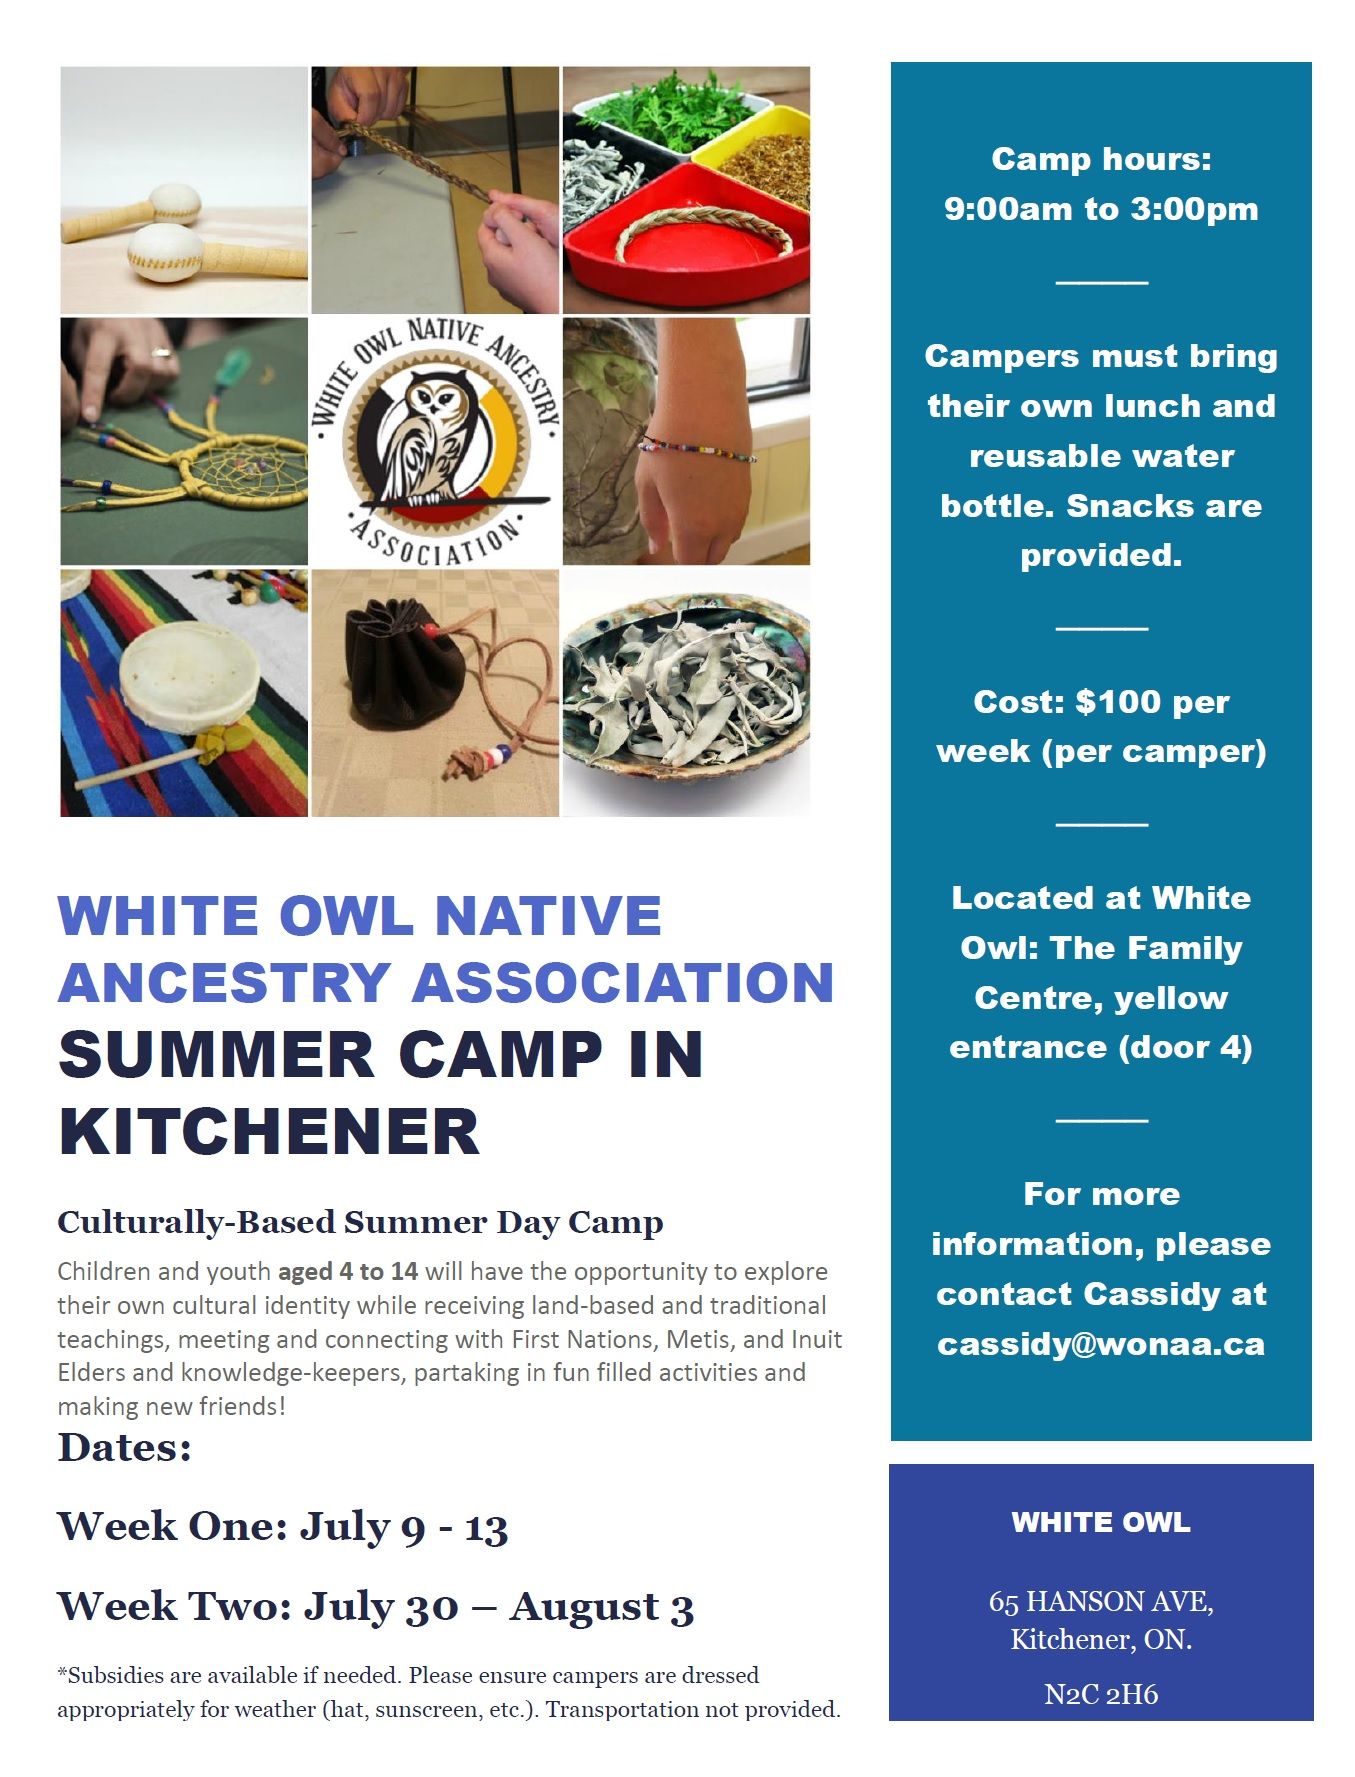 White Owl Native Ancestry Association Summer Camp in Kitchener